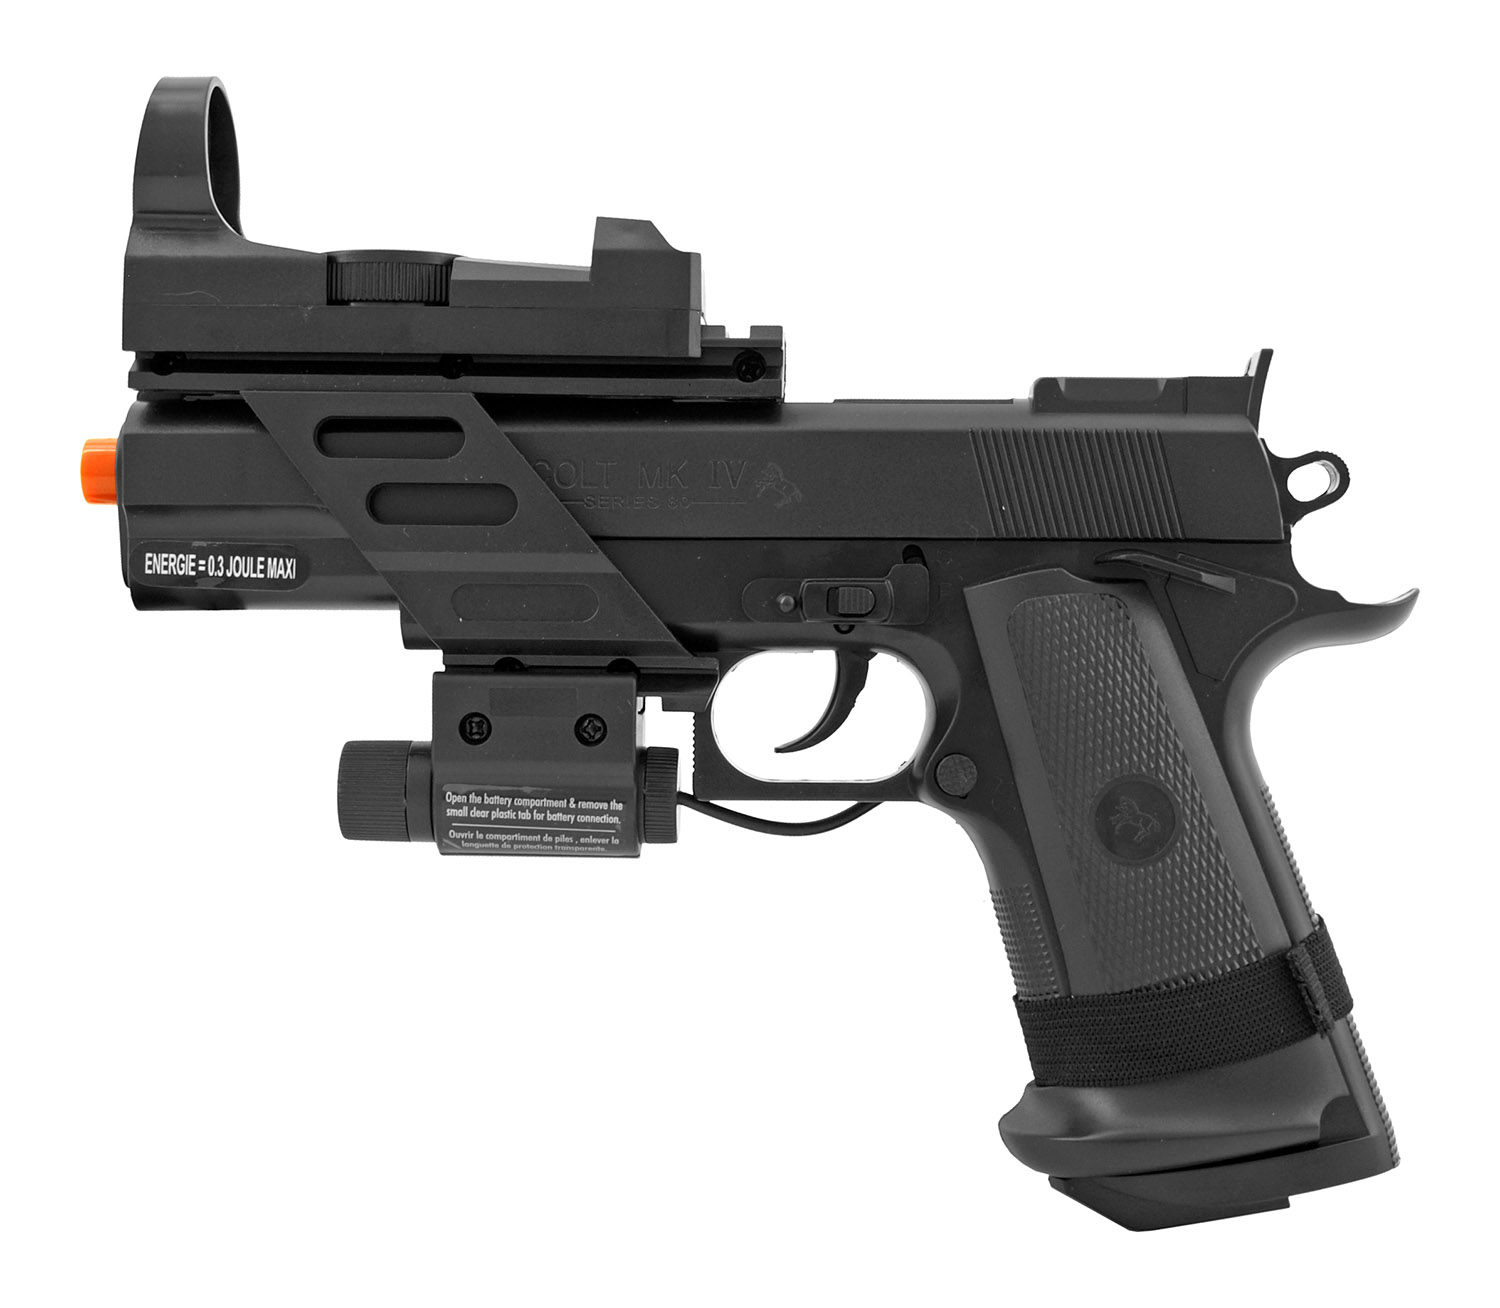 Colt MK IV Spring Powered Airsoft Sidearm Pistol Kit with Target and Mock Scope